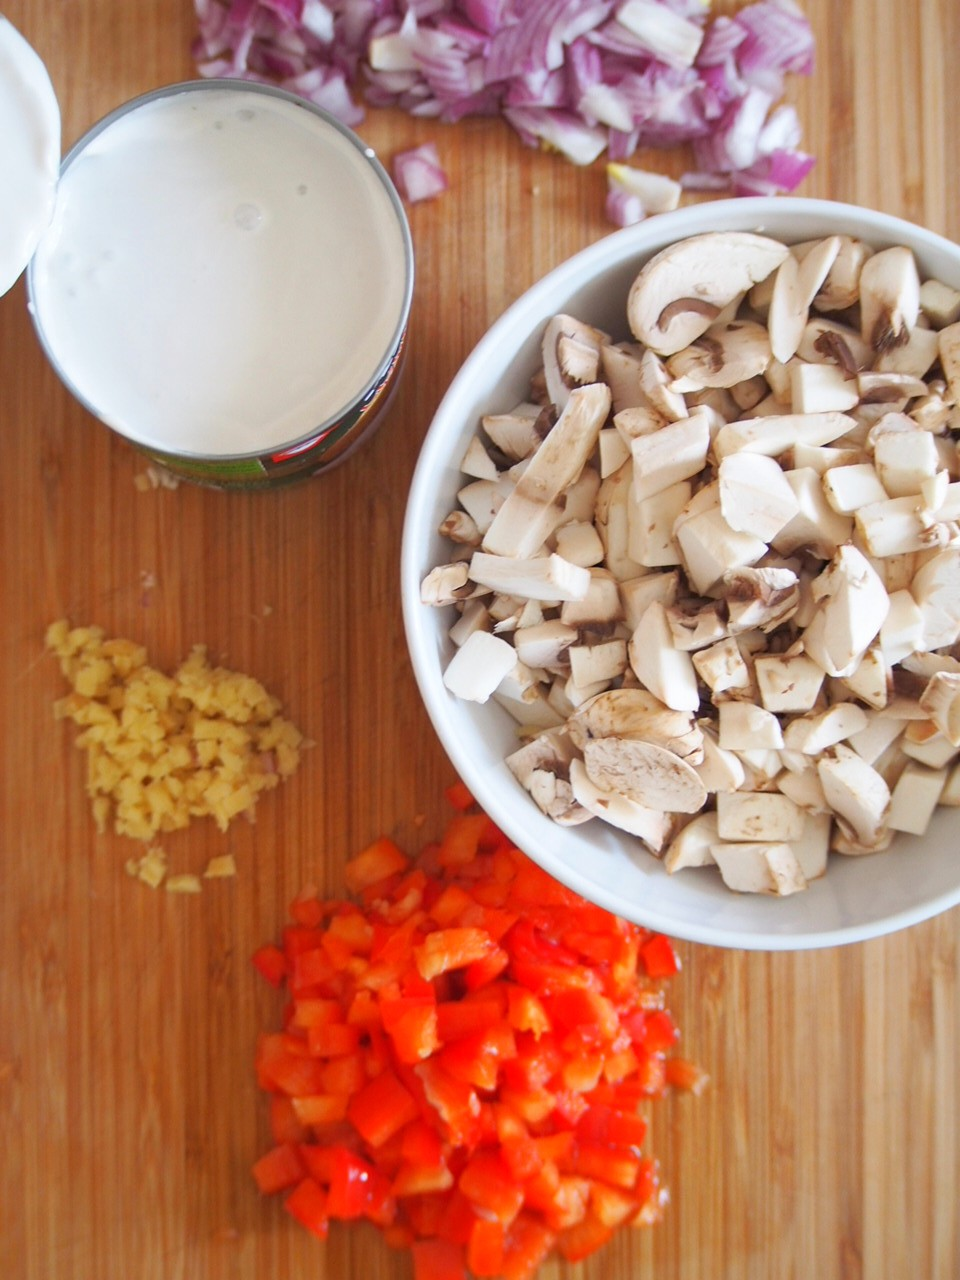 Some of the ingredients for Rice and Mushroom Spicy Thai Soup.